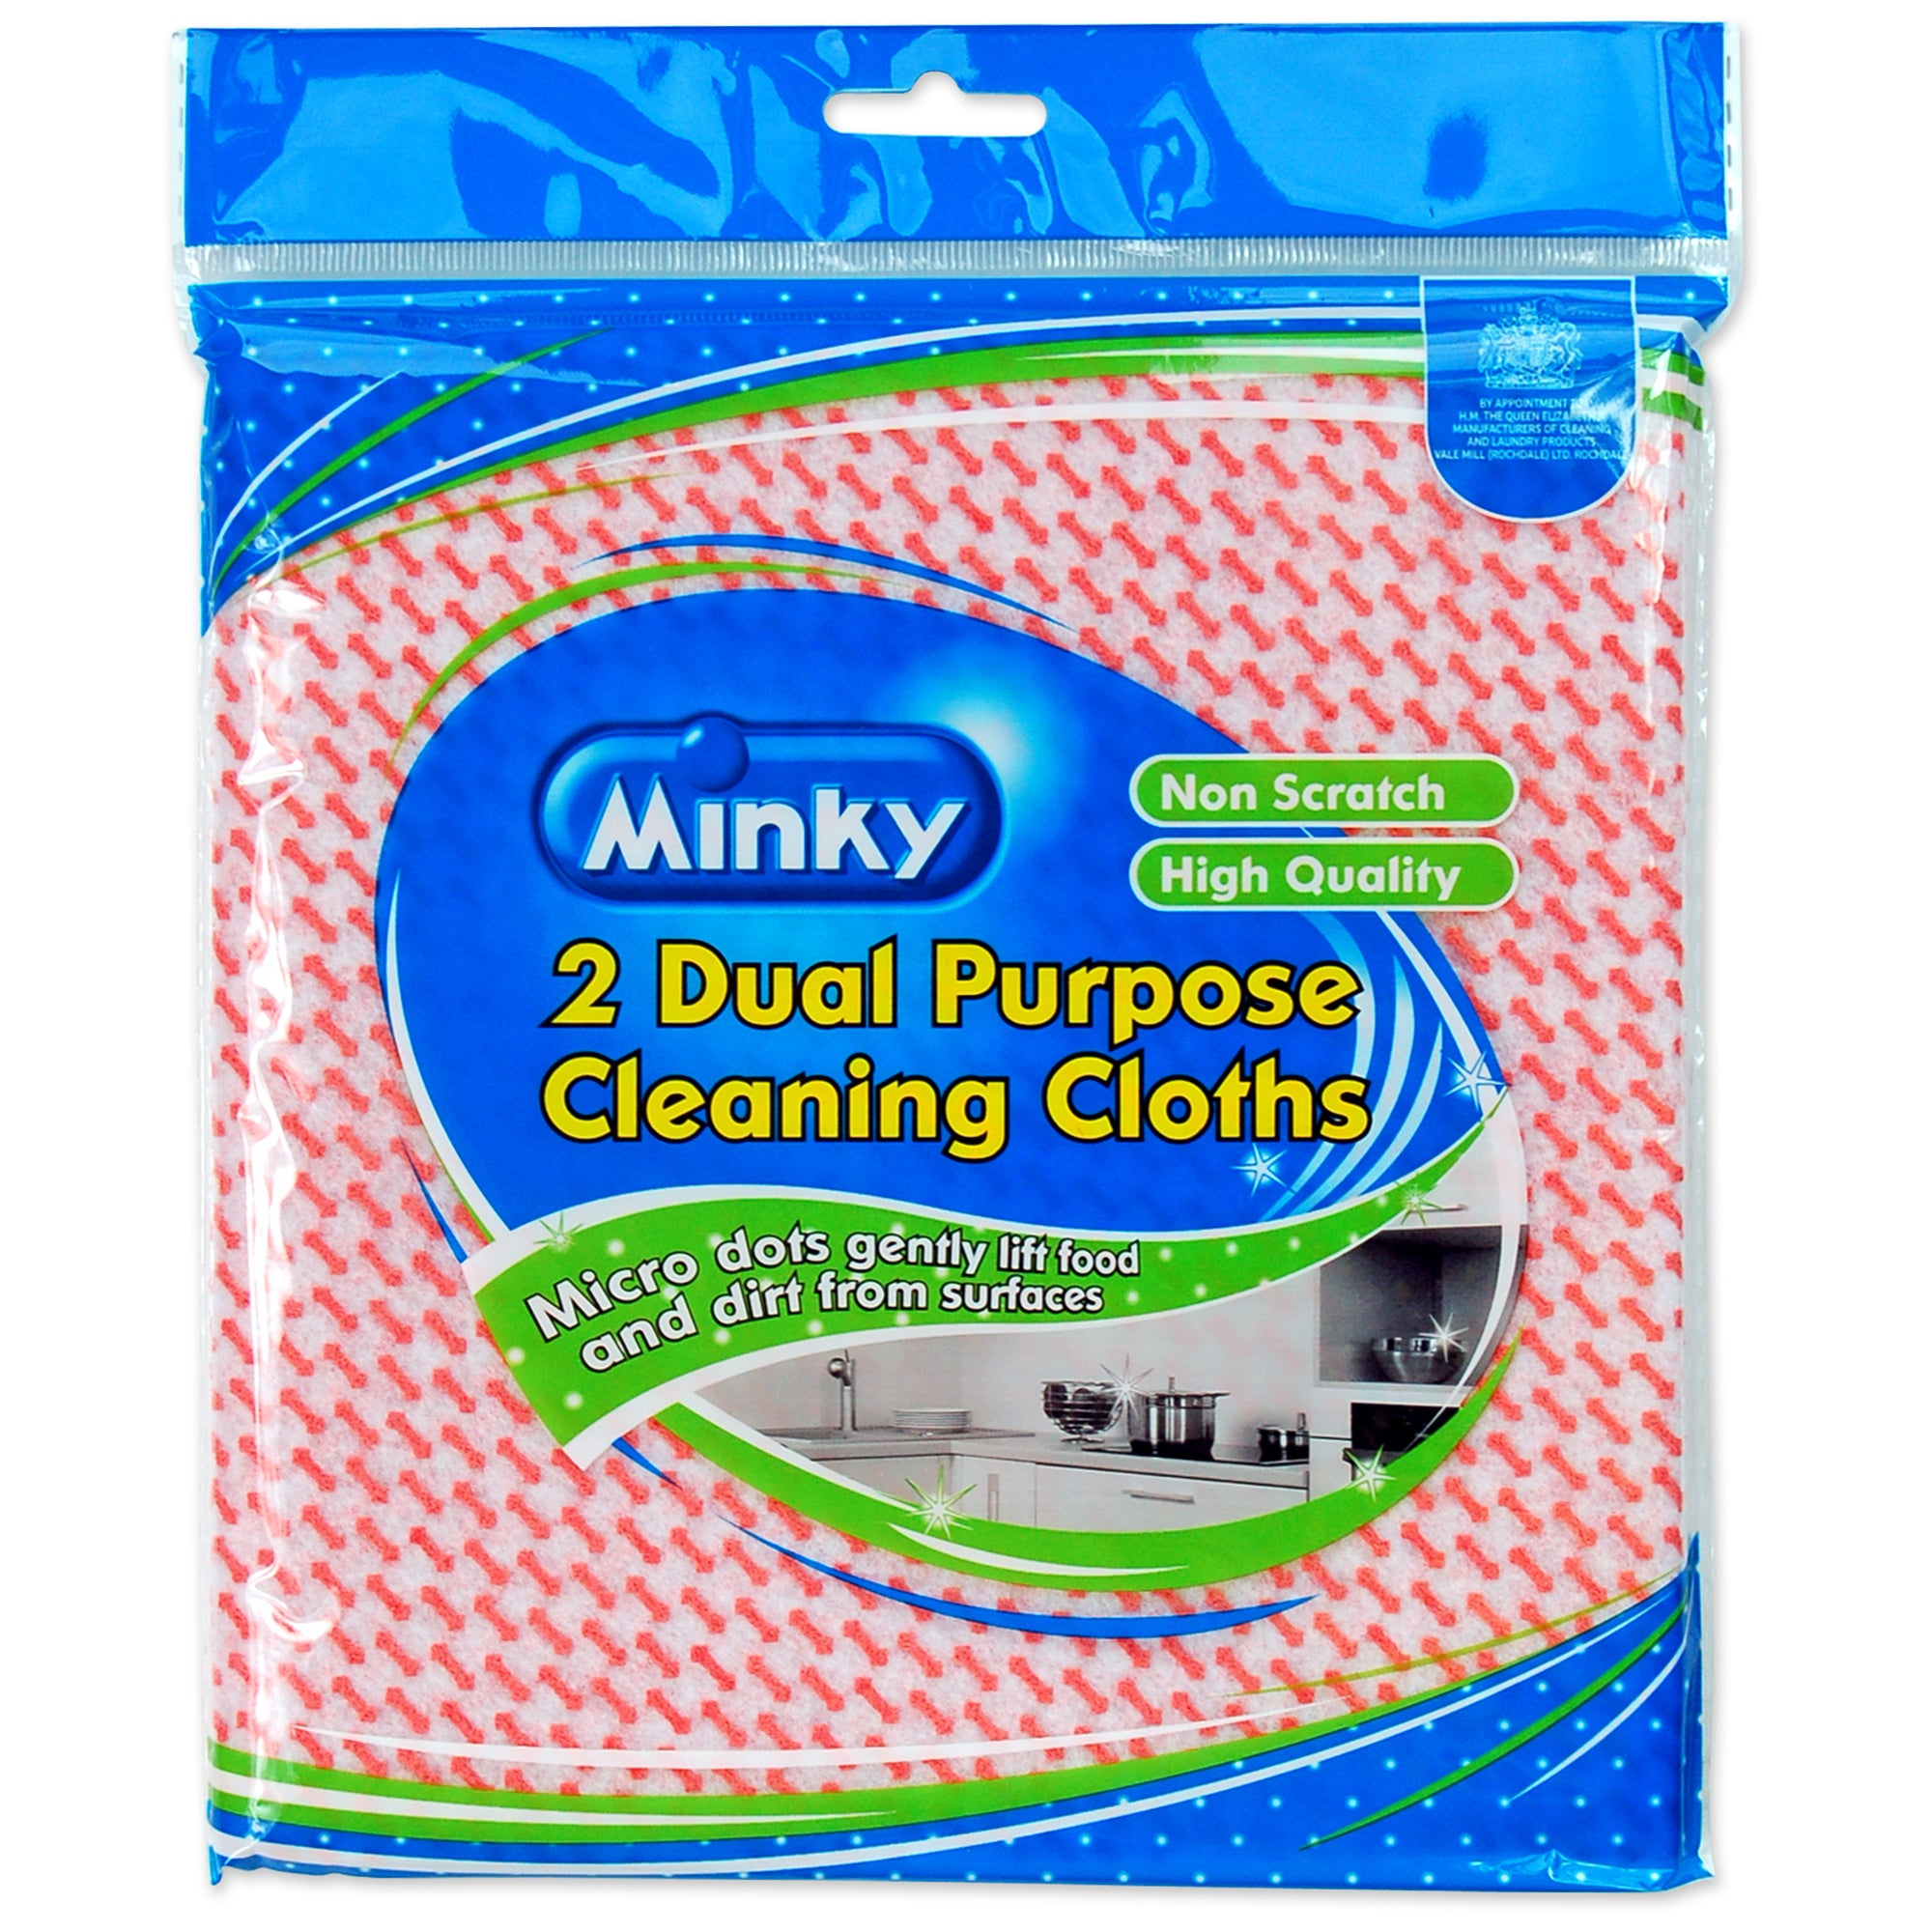 Minky Pack of 2 Dual Purpose Cleaning Cloths